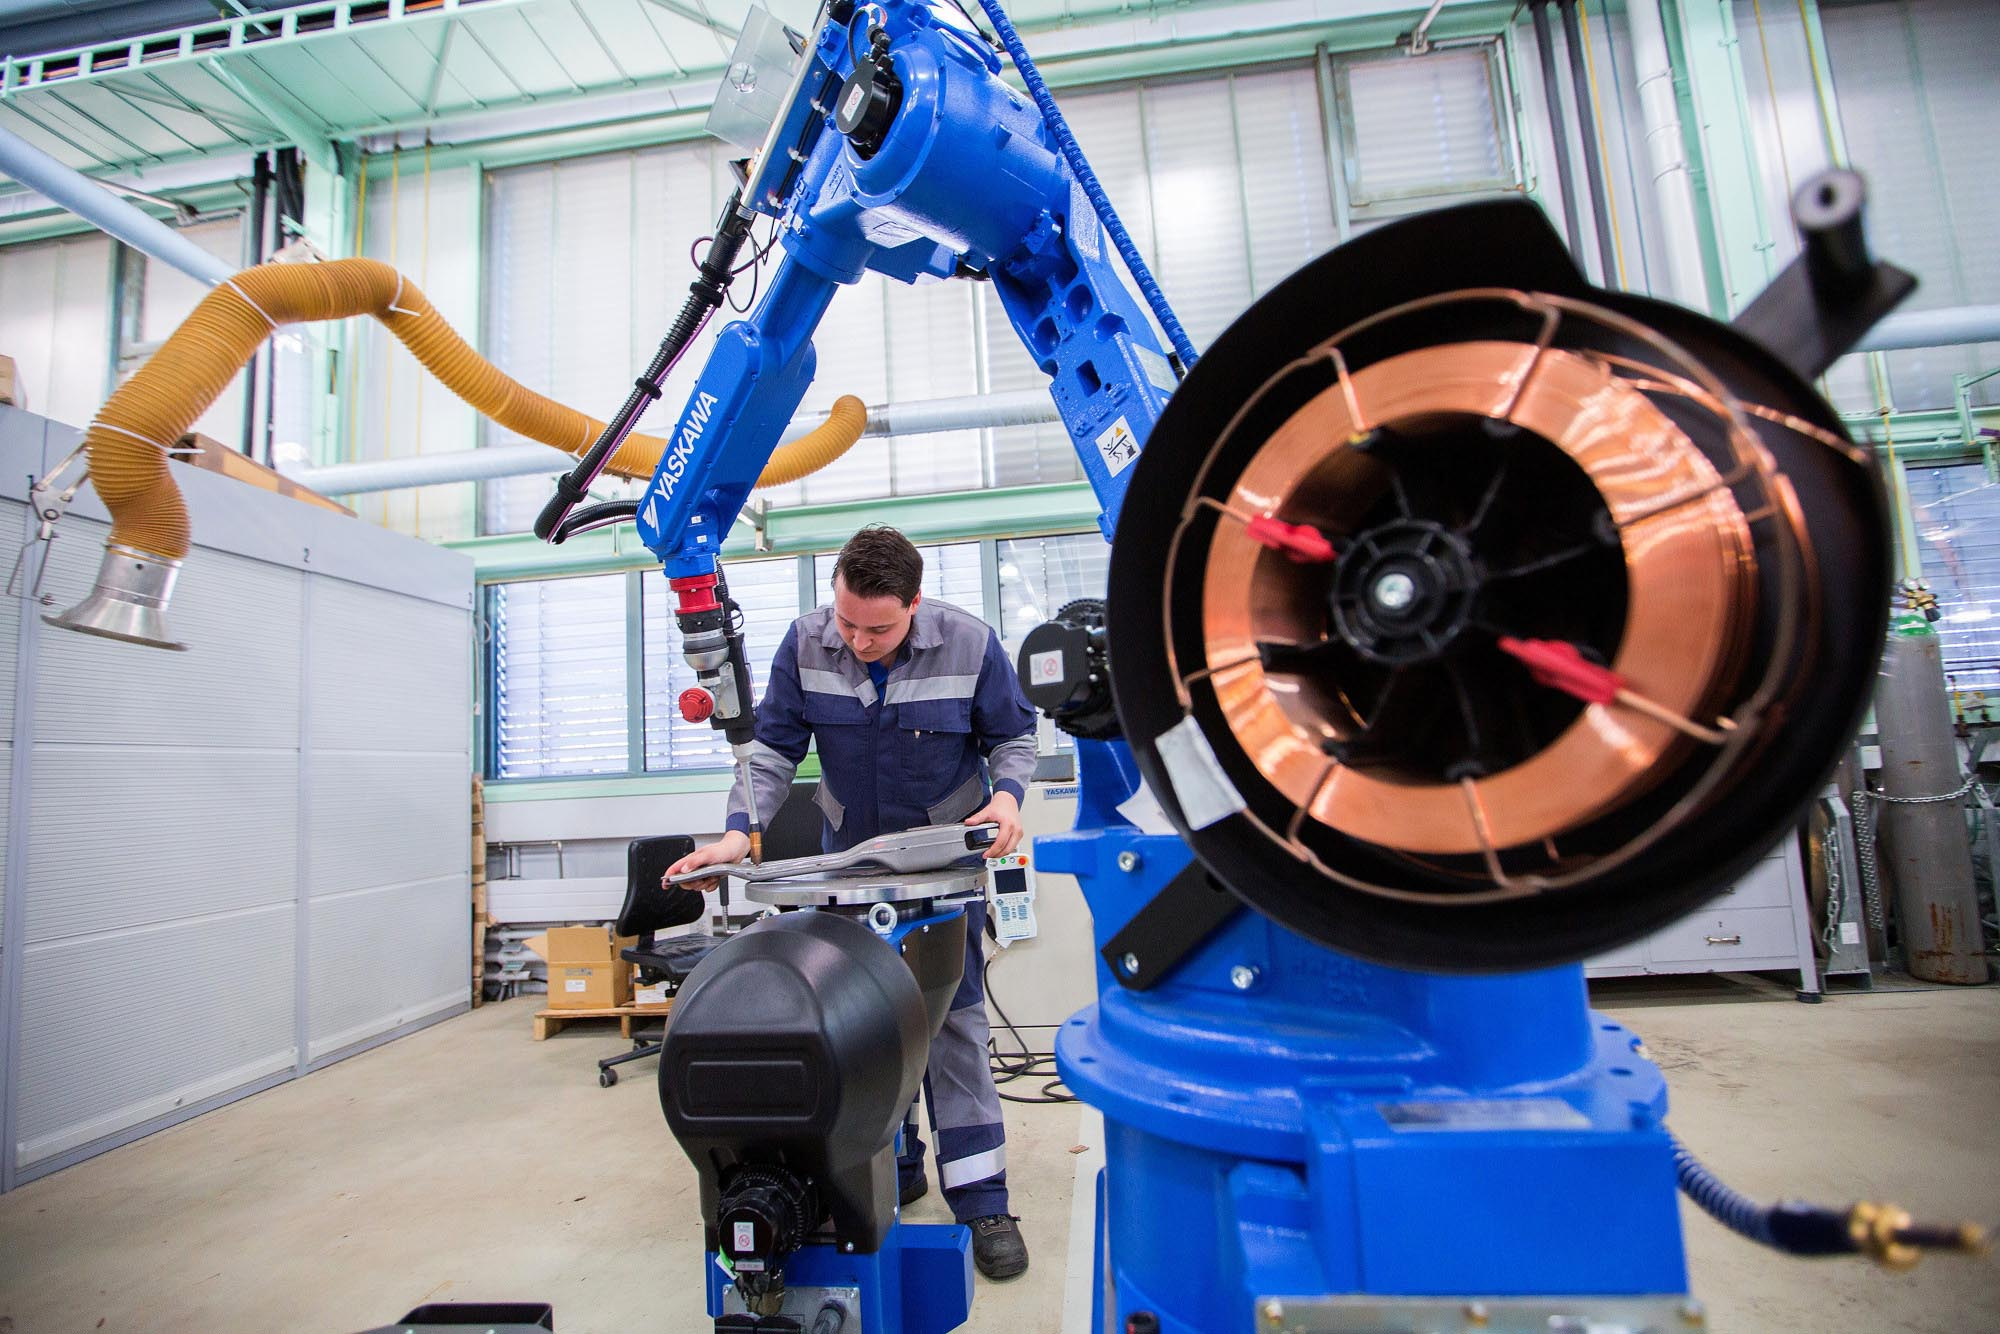 Yaskawa Electric Corp.'s robotic arm at ThyssenKrupp's steel plant in Germany. | BLOOMBERG